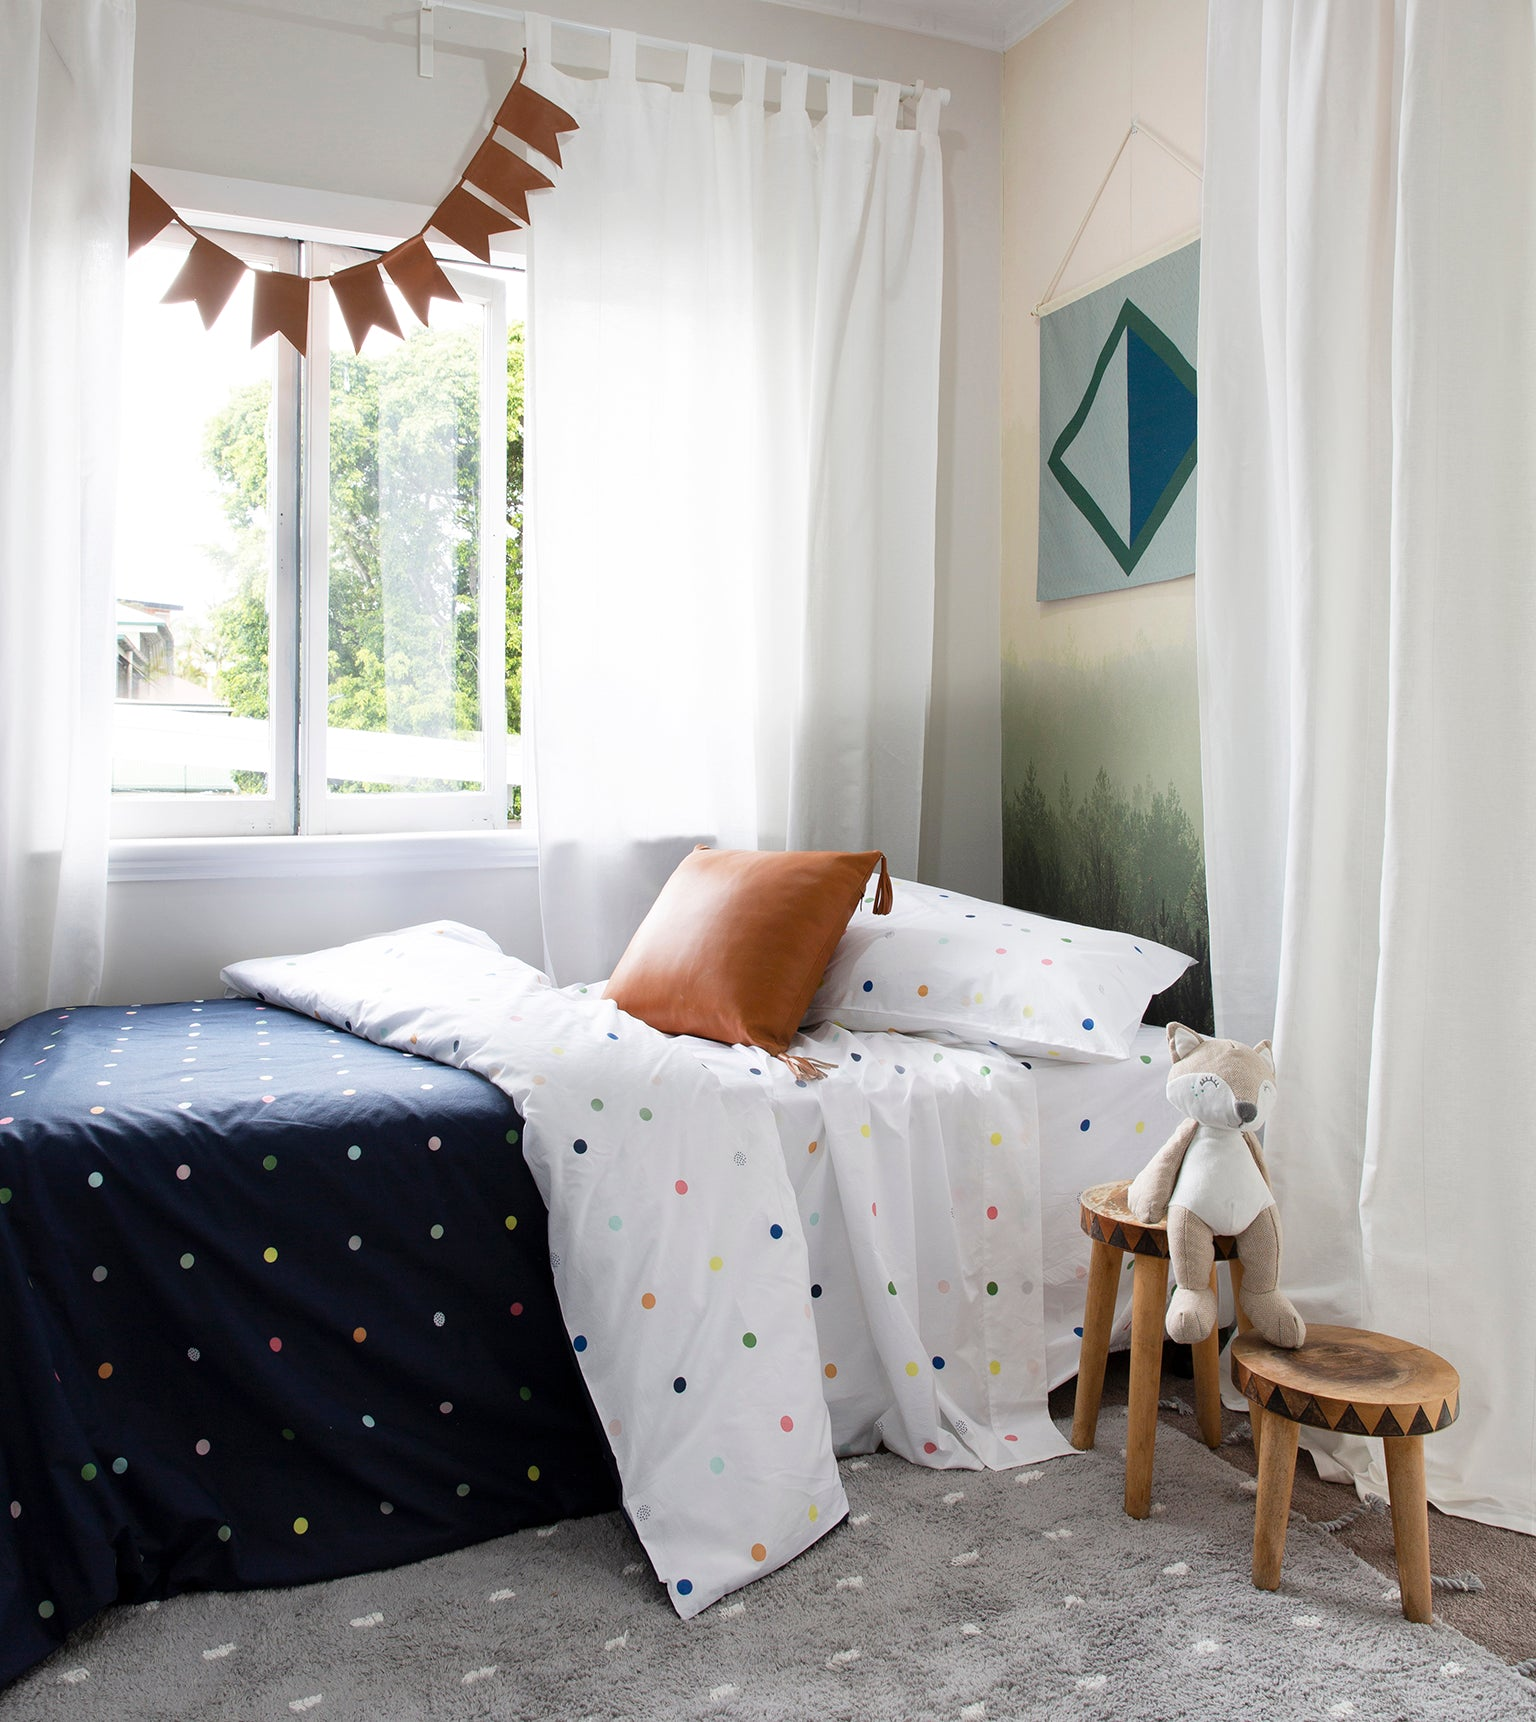 Diagonal fabric wall flag